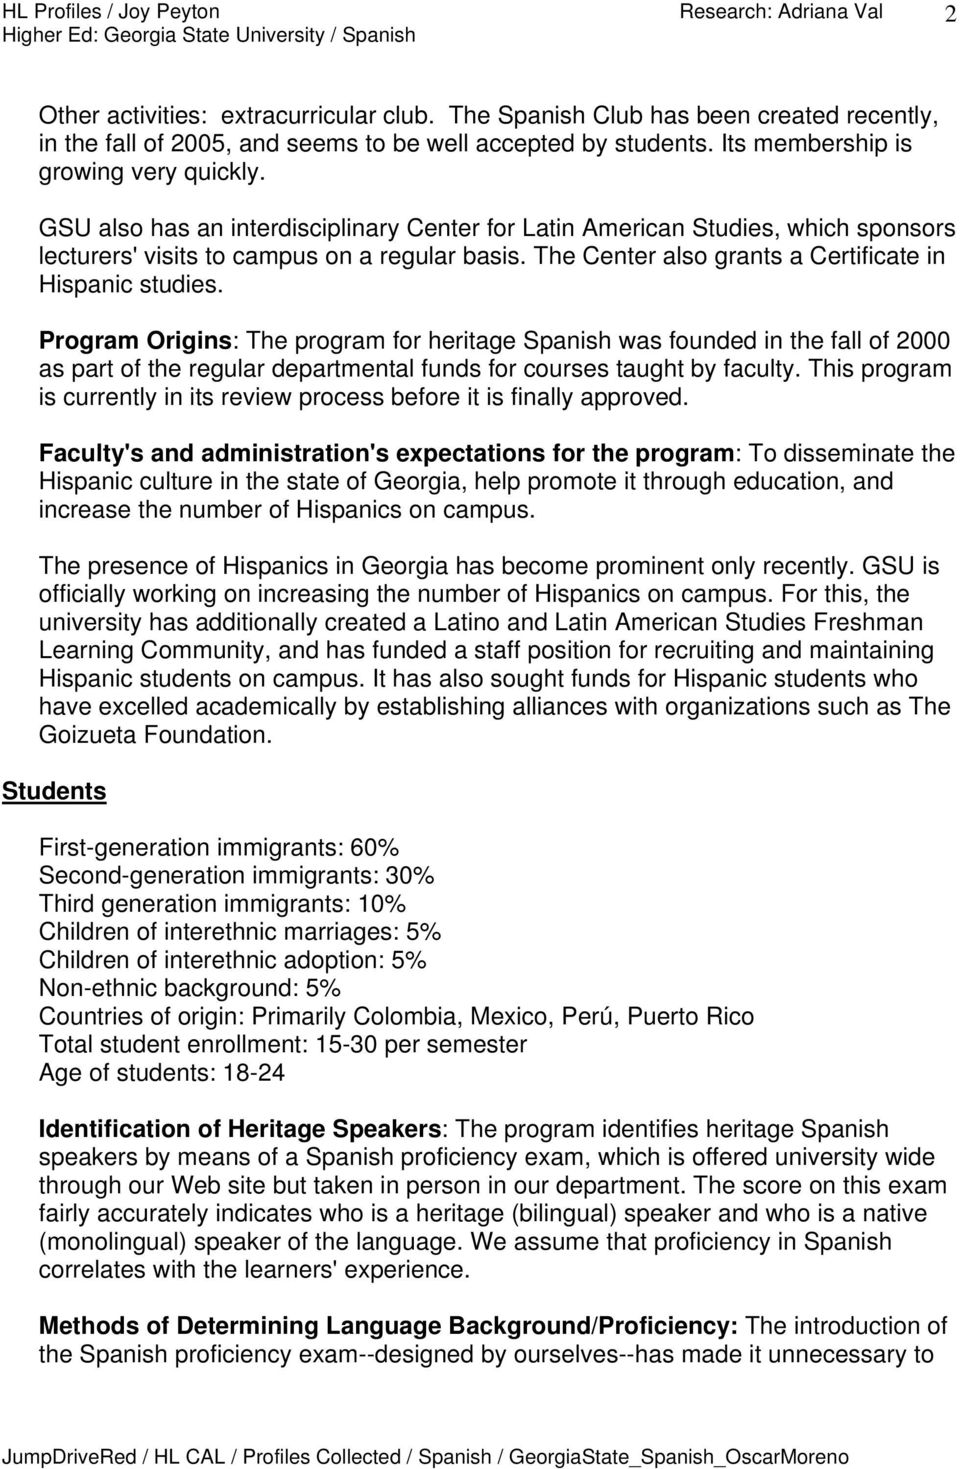 Program Origins: The program for heritage Spanish was founded in the fall of 2000 as part of the regular departmental funds for courses taught by faculty.